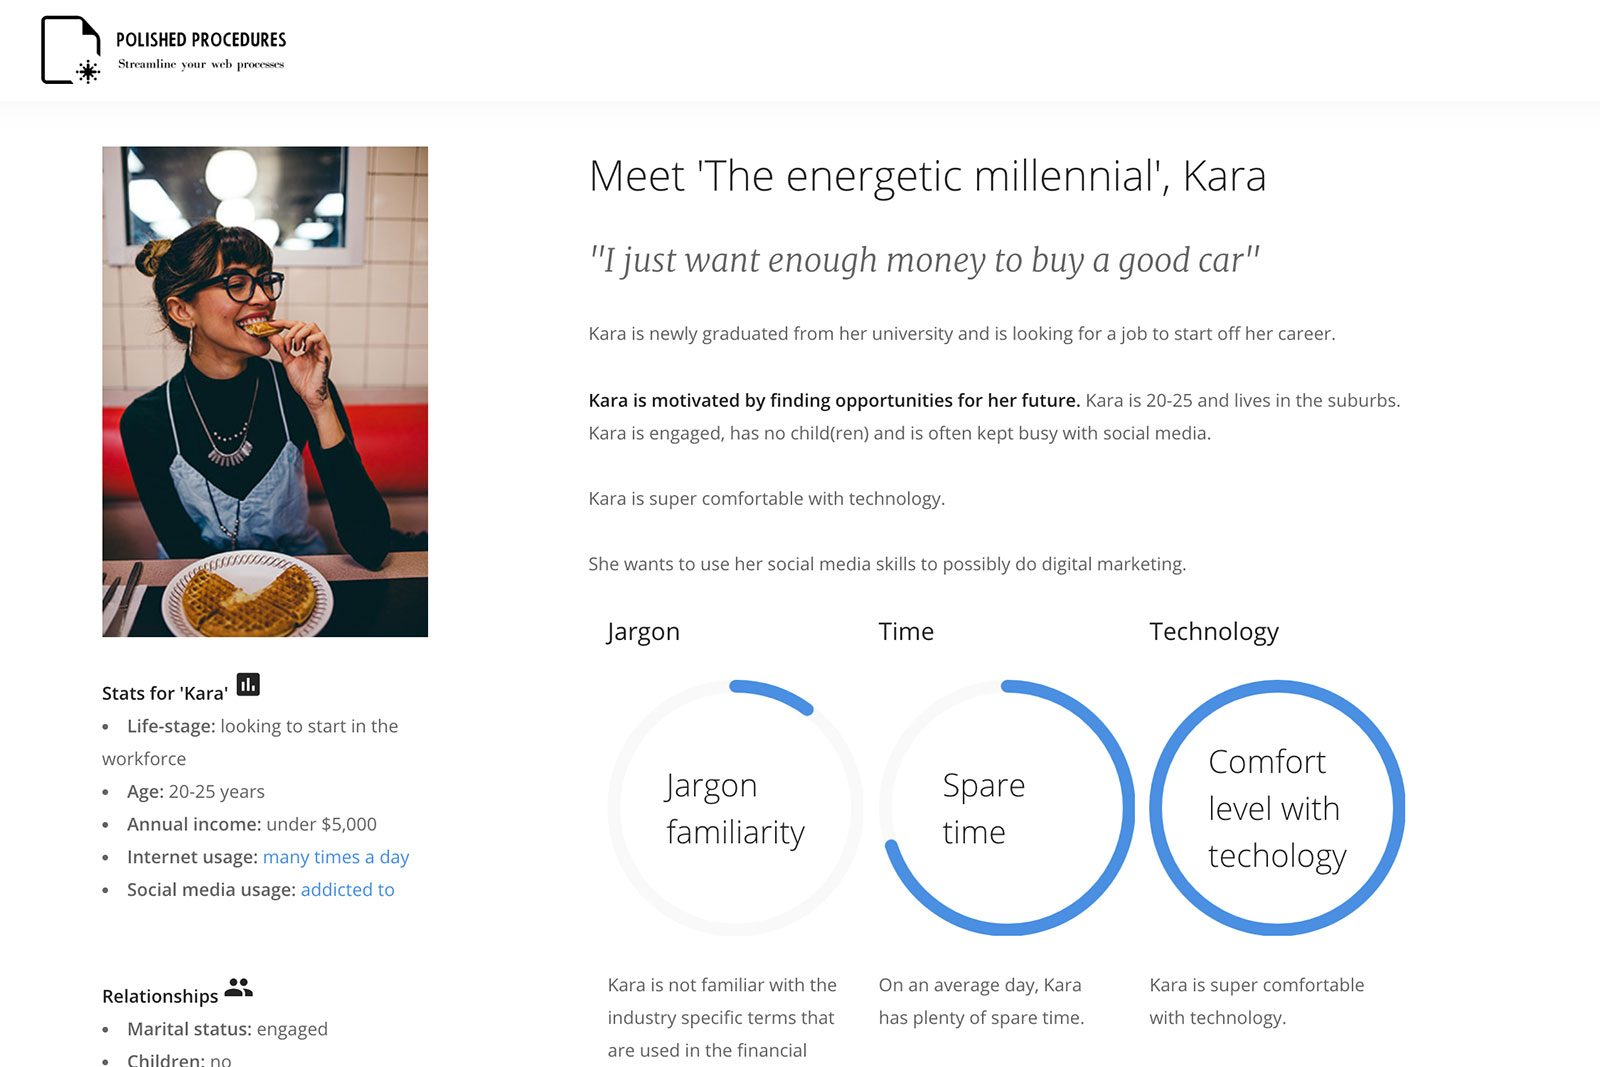 'The energetic millennial' persona